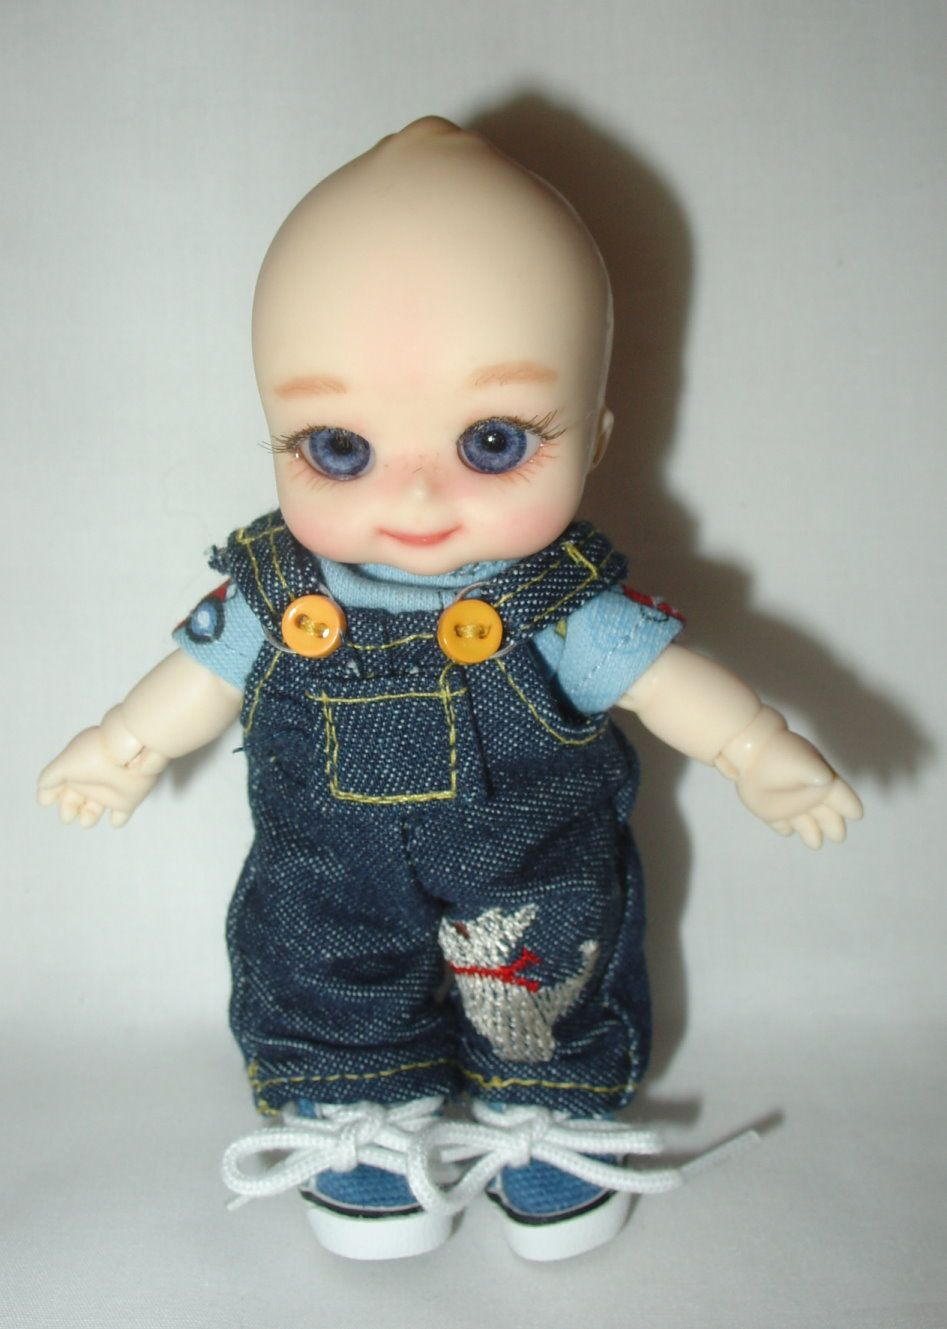 Nappy Choo overalls outfit for sale $28  http://www.dudsfordolls.com/NappyChoo/Nappy.htm